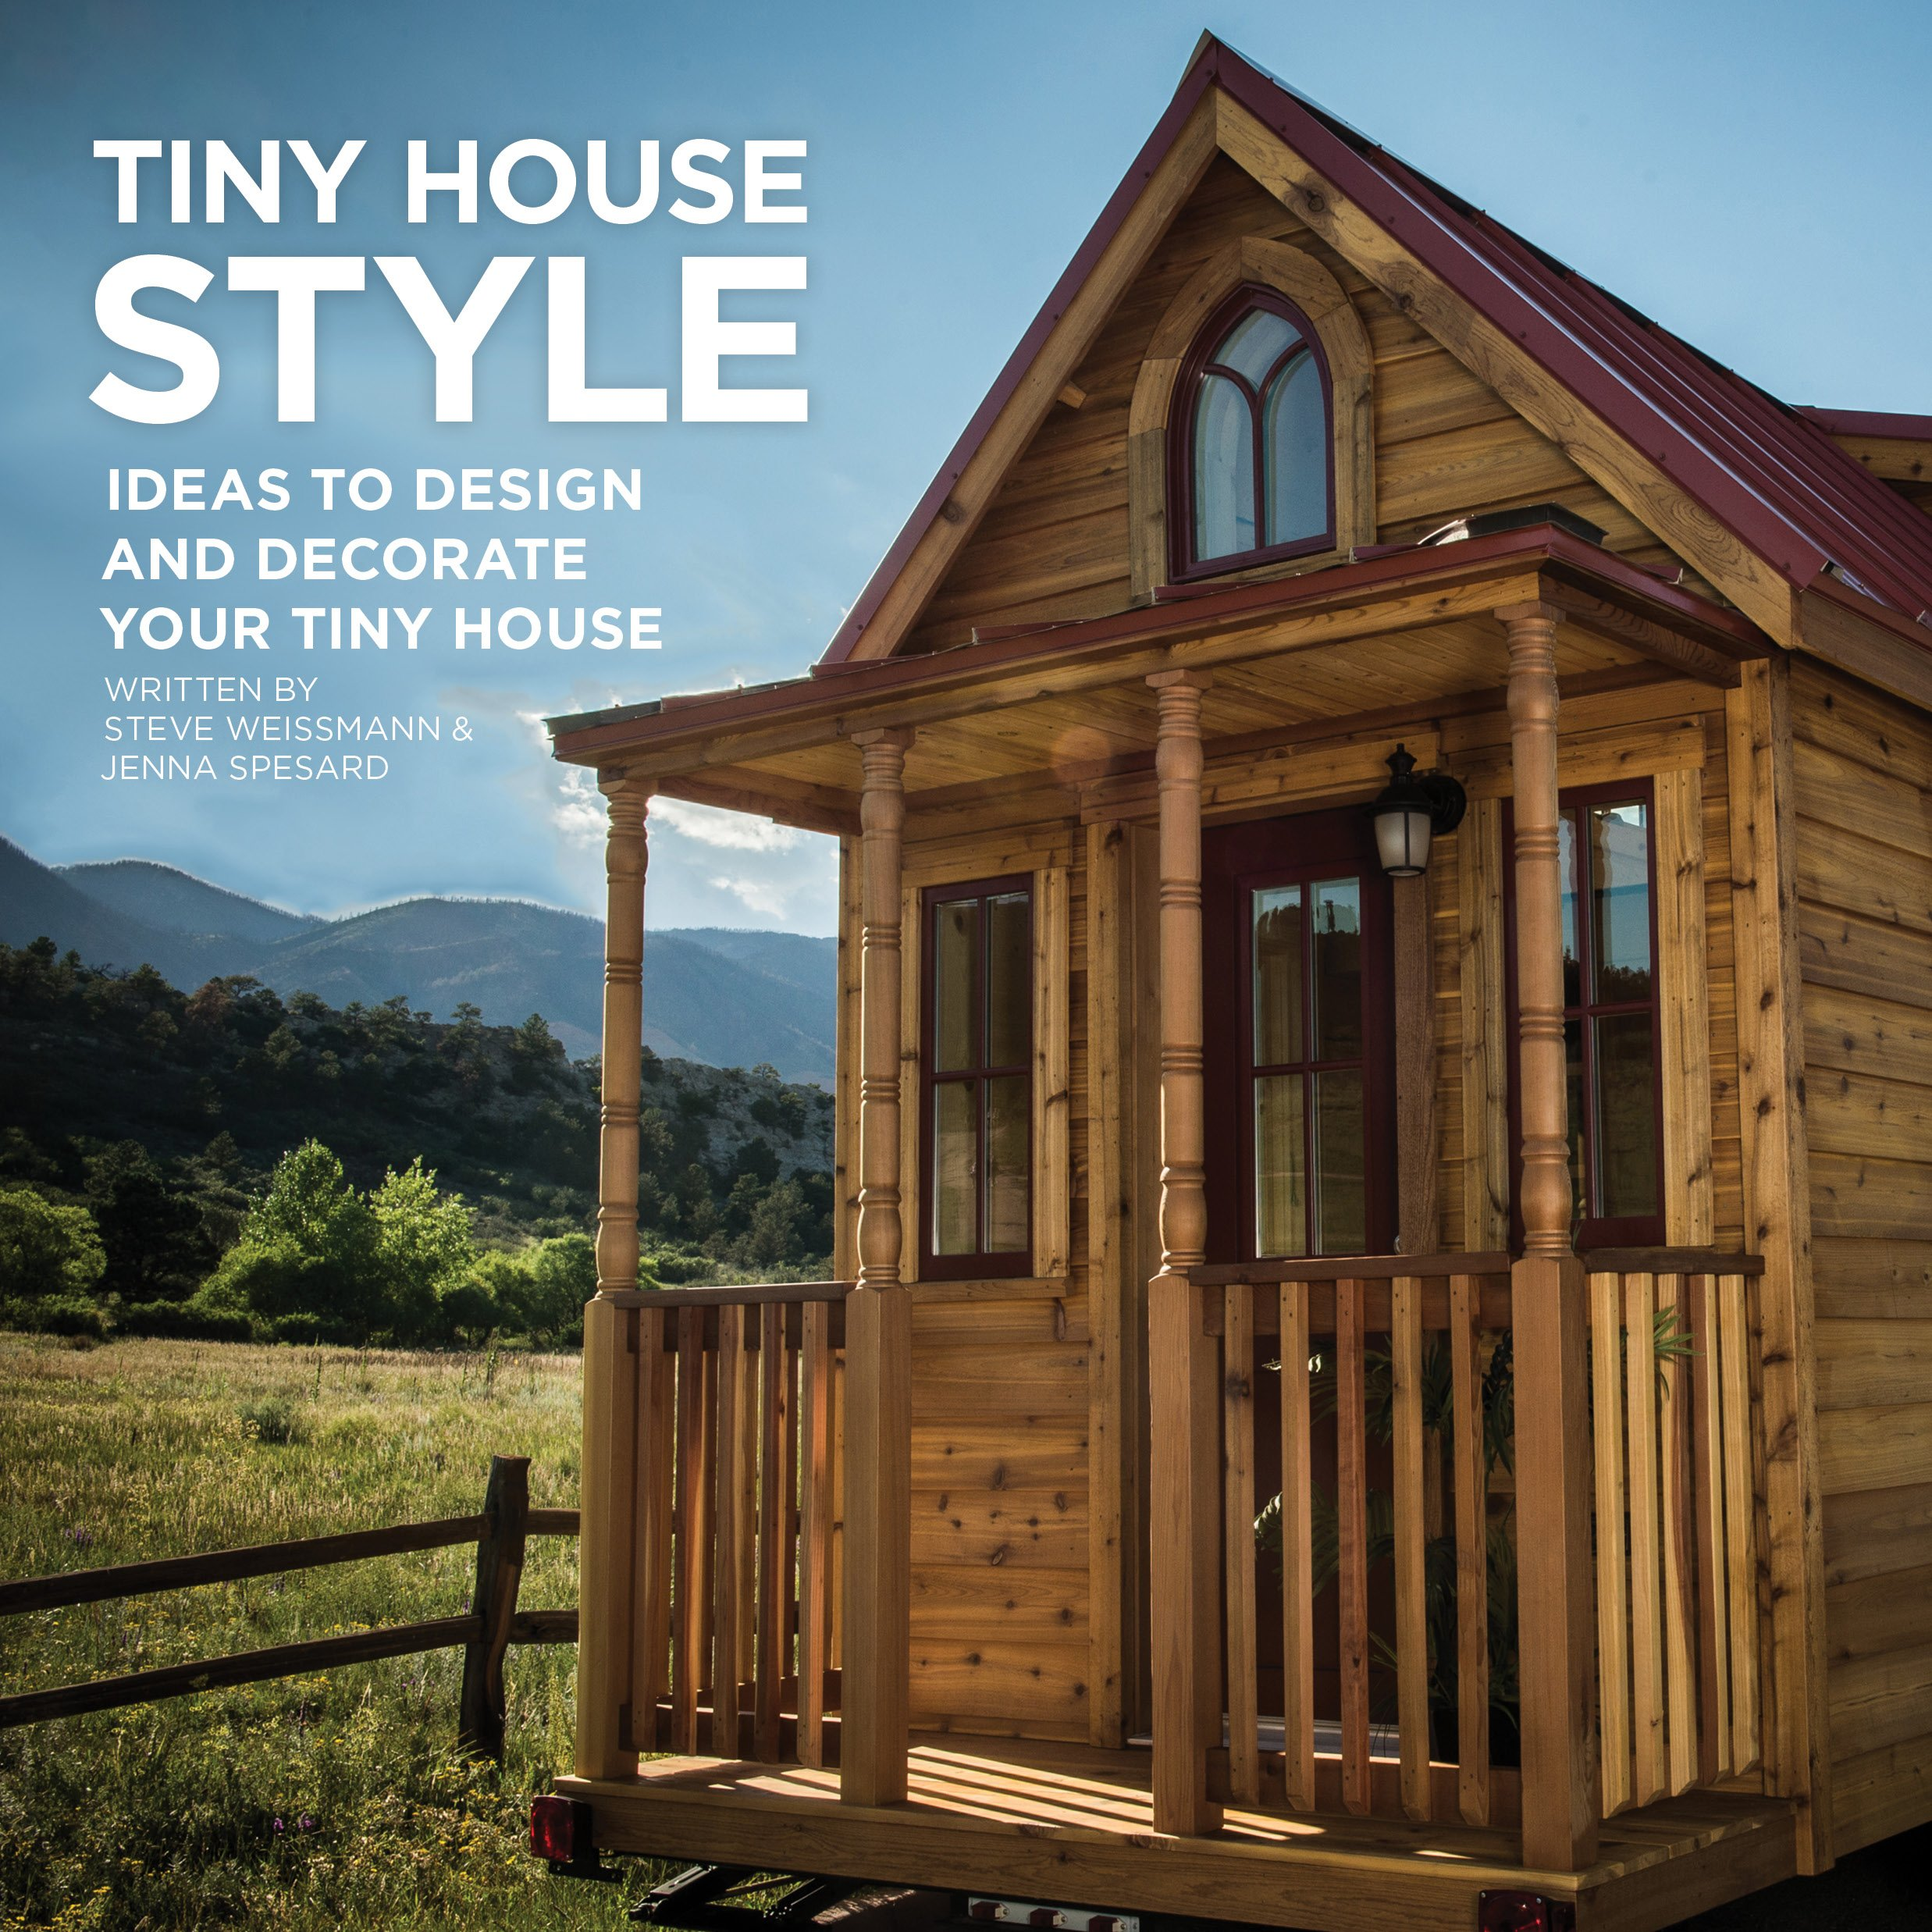 tiny house style ideas to design and decorate your tiny house steve weissmann 9780692269602 amazoncom books